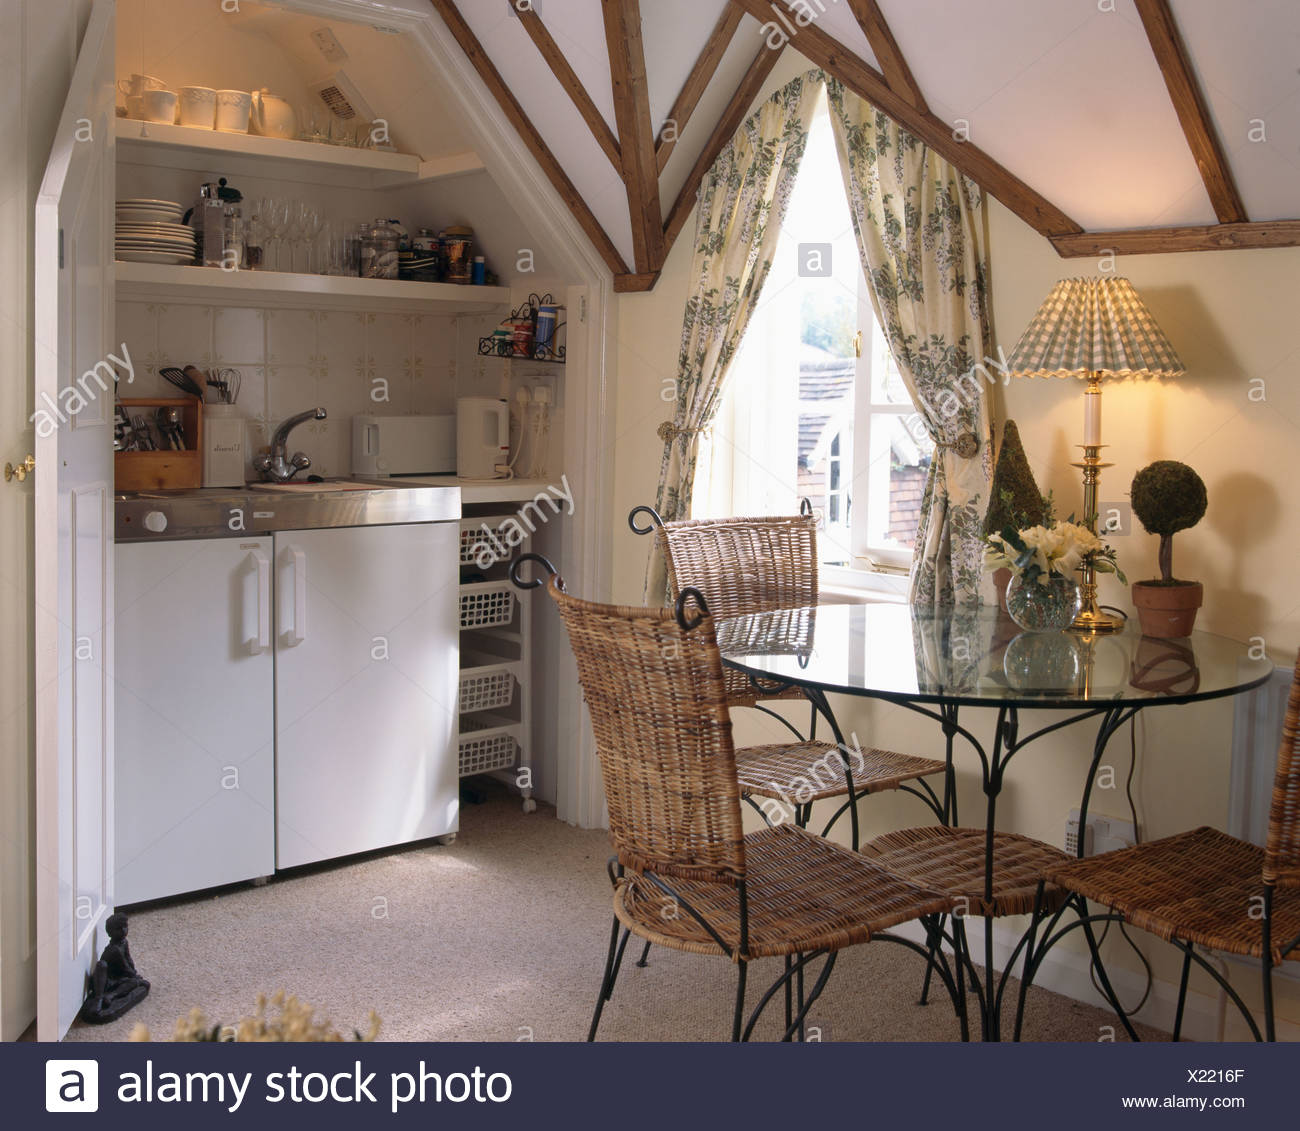 Small Country Table And Chairs: Lighted Lamp On Glass Table And Wicker Chairs In Small Kitchen Dining Room In Country Loft